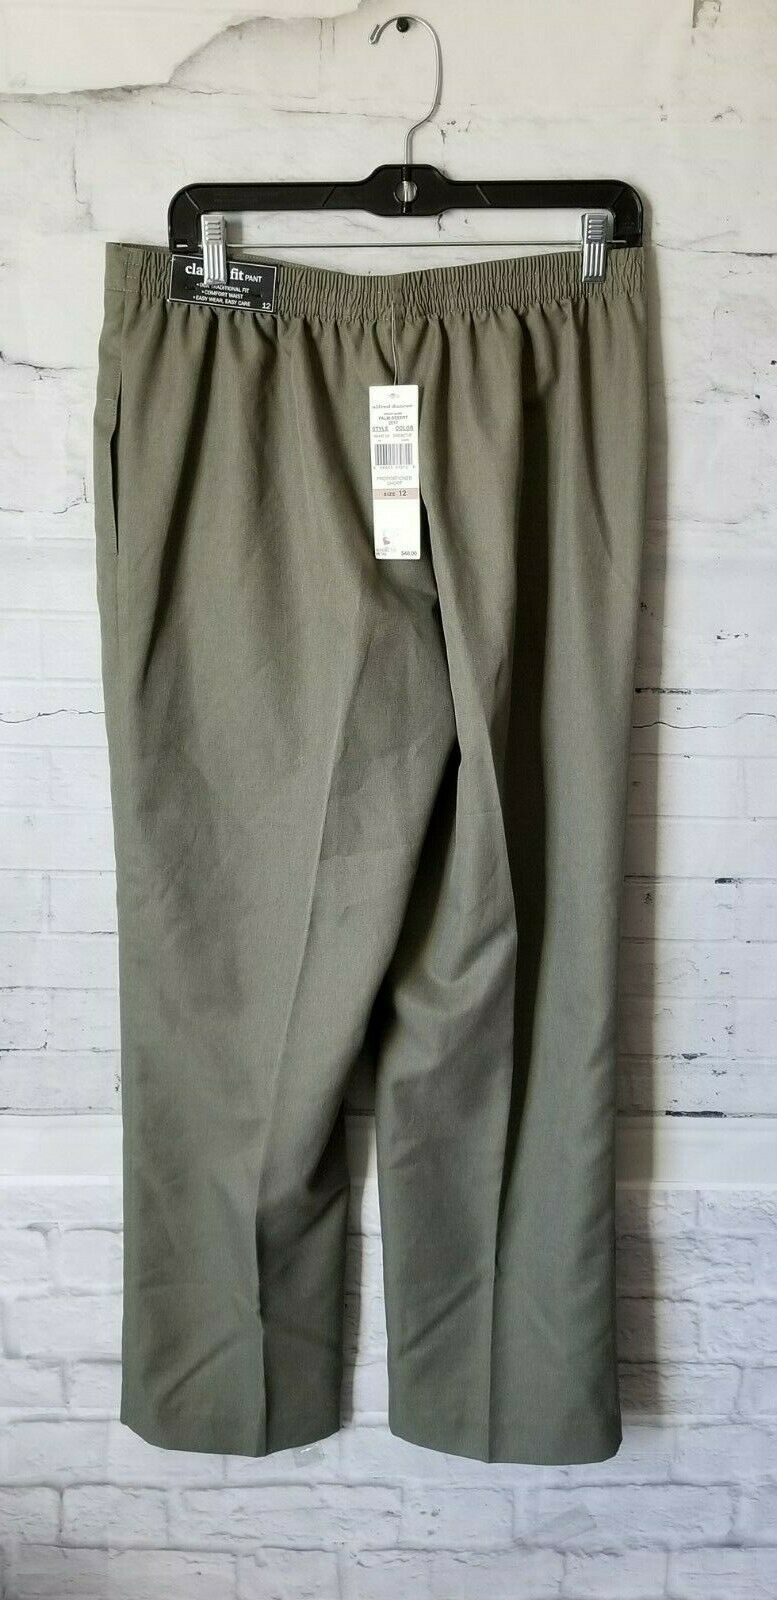 Alfred Dunner Women's Palm Dessert Green  Cactus Elastic Dress Pants sz 12 NEW